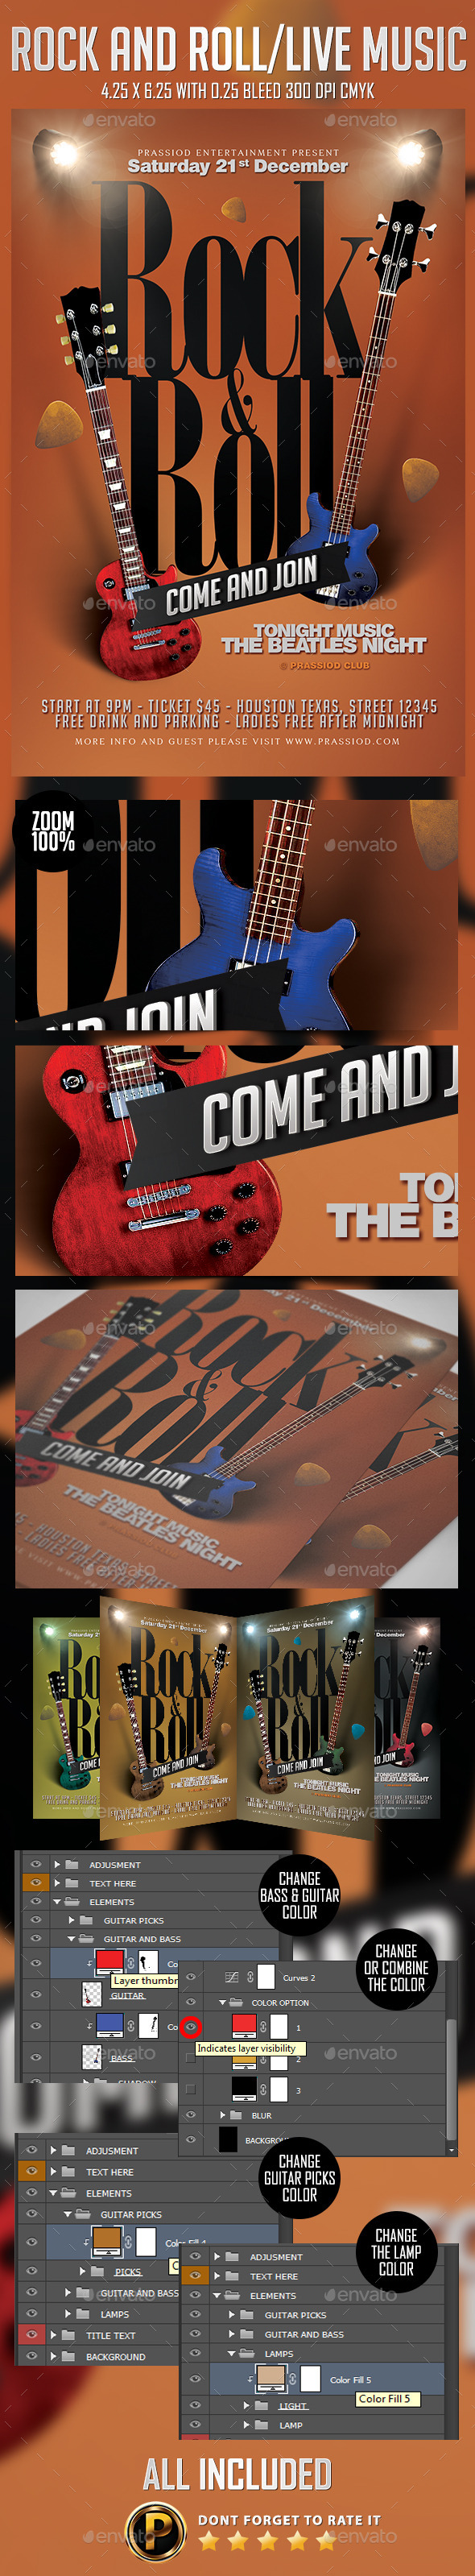 Rock And Roll/Live Music Flyer Template - Concerts Events